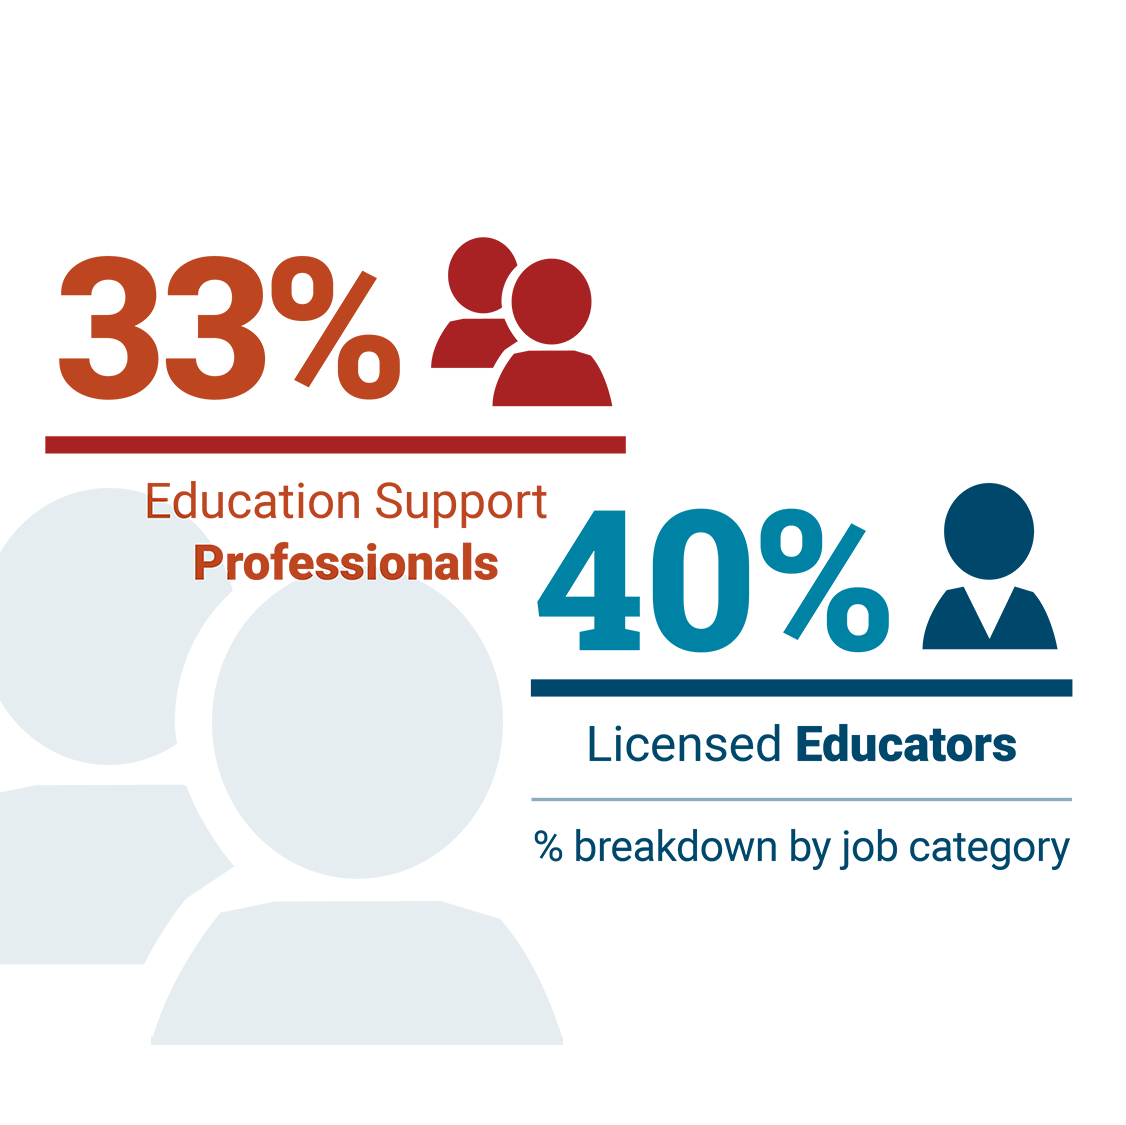 40% of licensed educators and 33% of education support professionals are considering leaving the education profession.